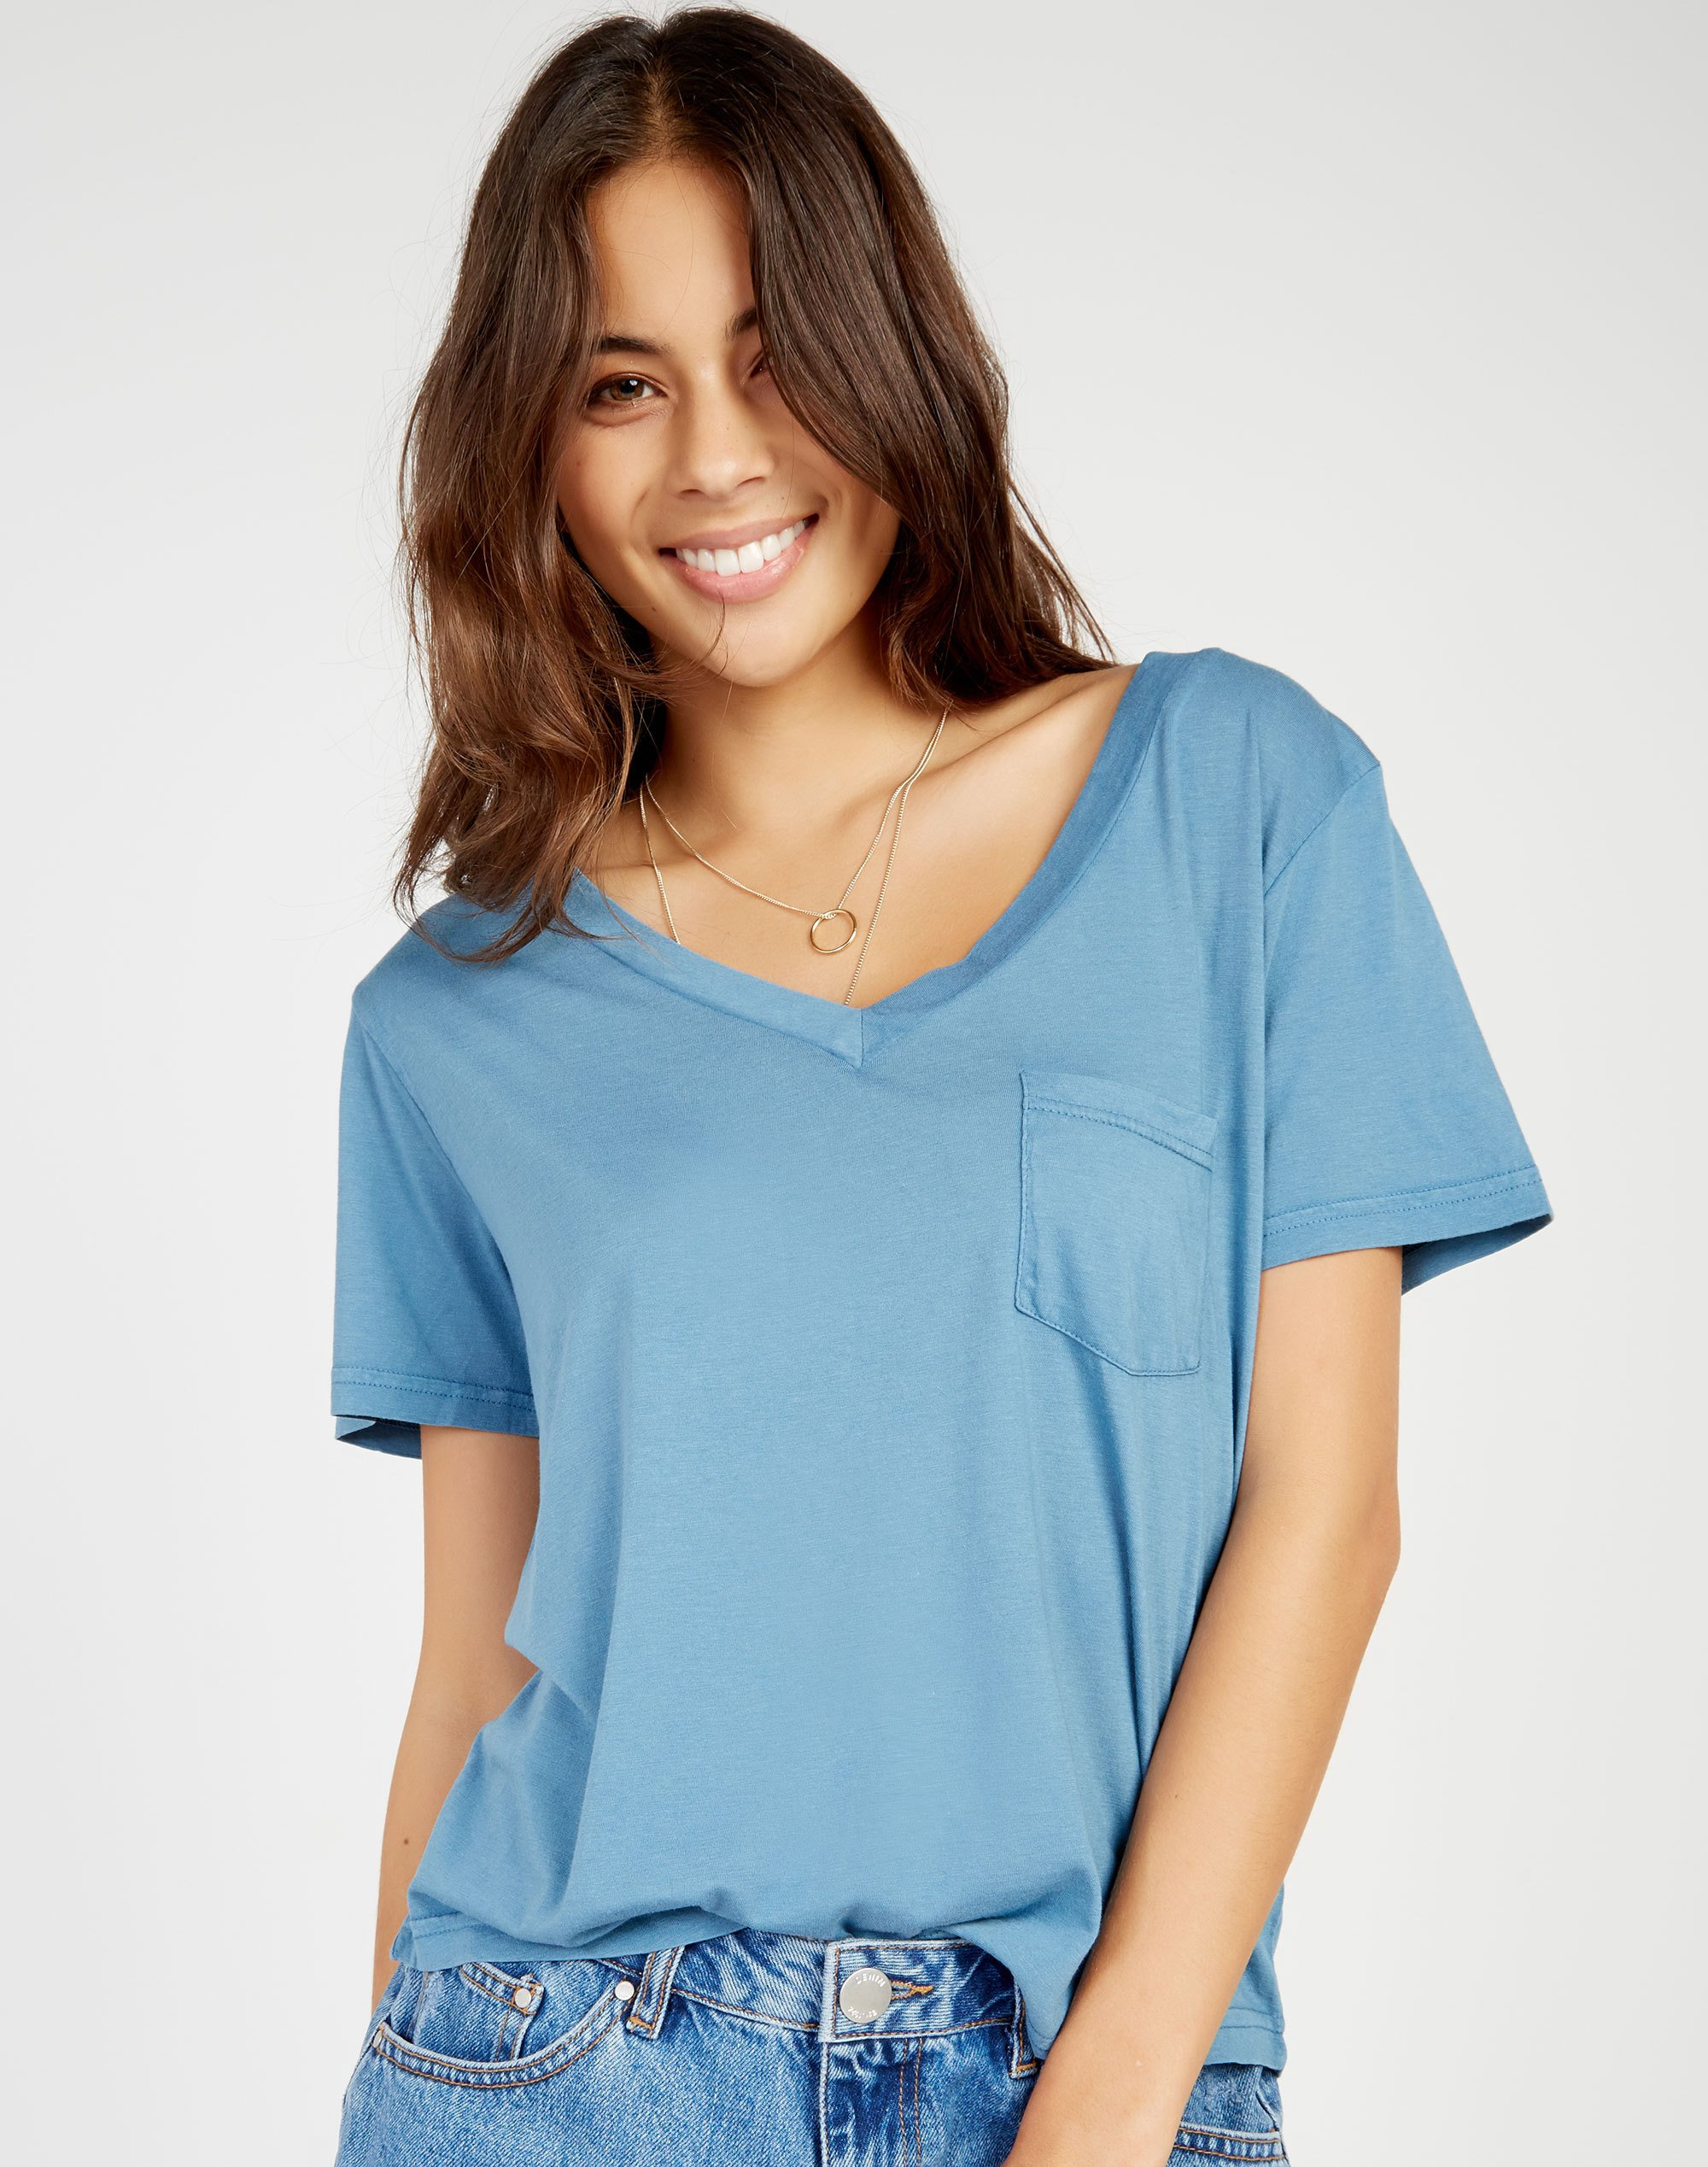 Washed Tee from Glassons $19.99